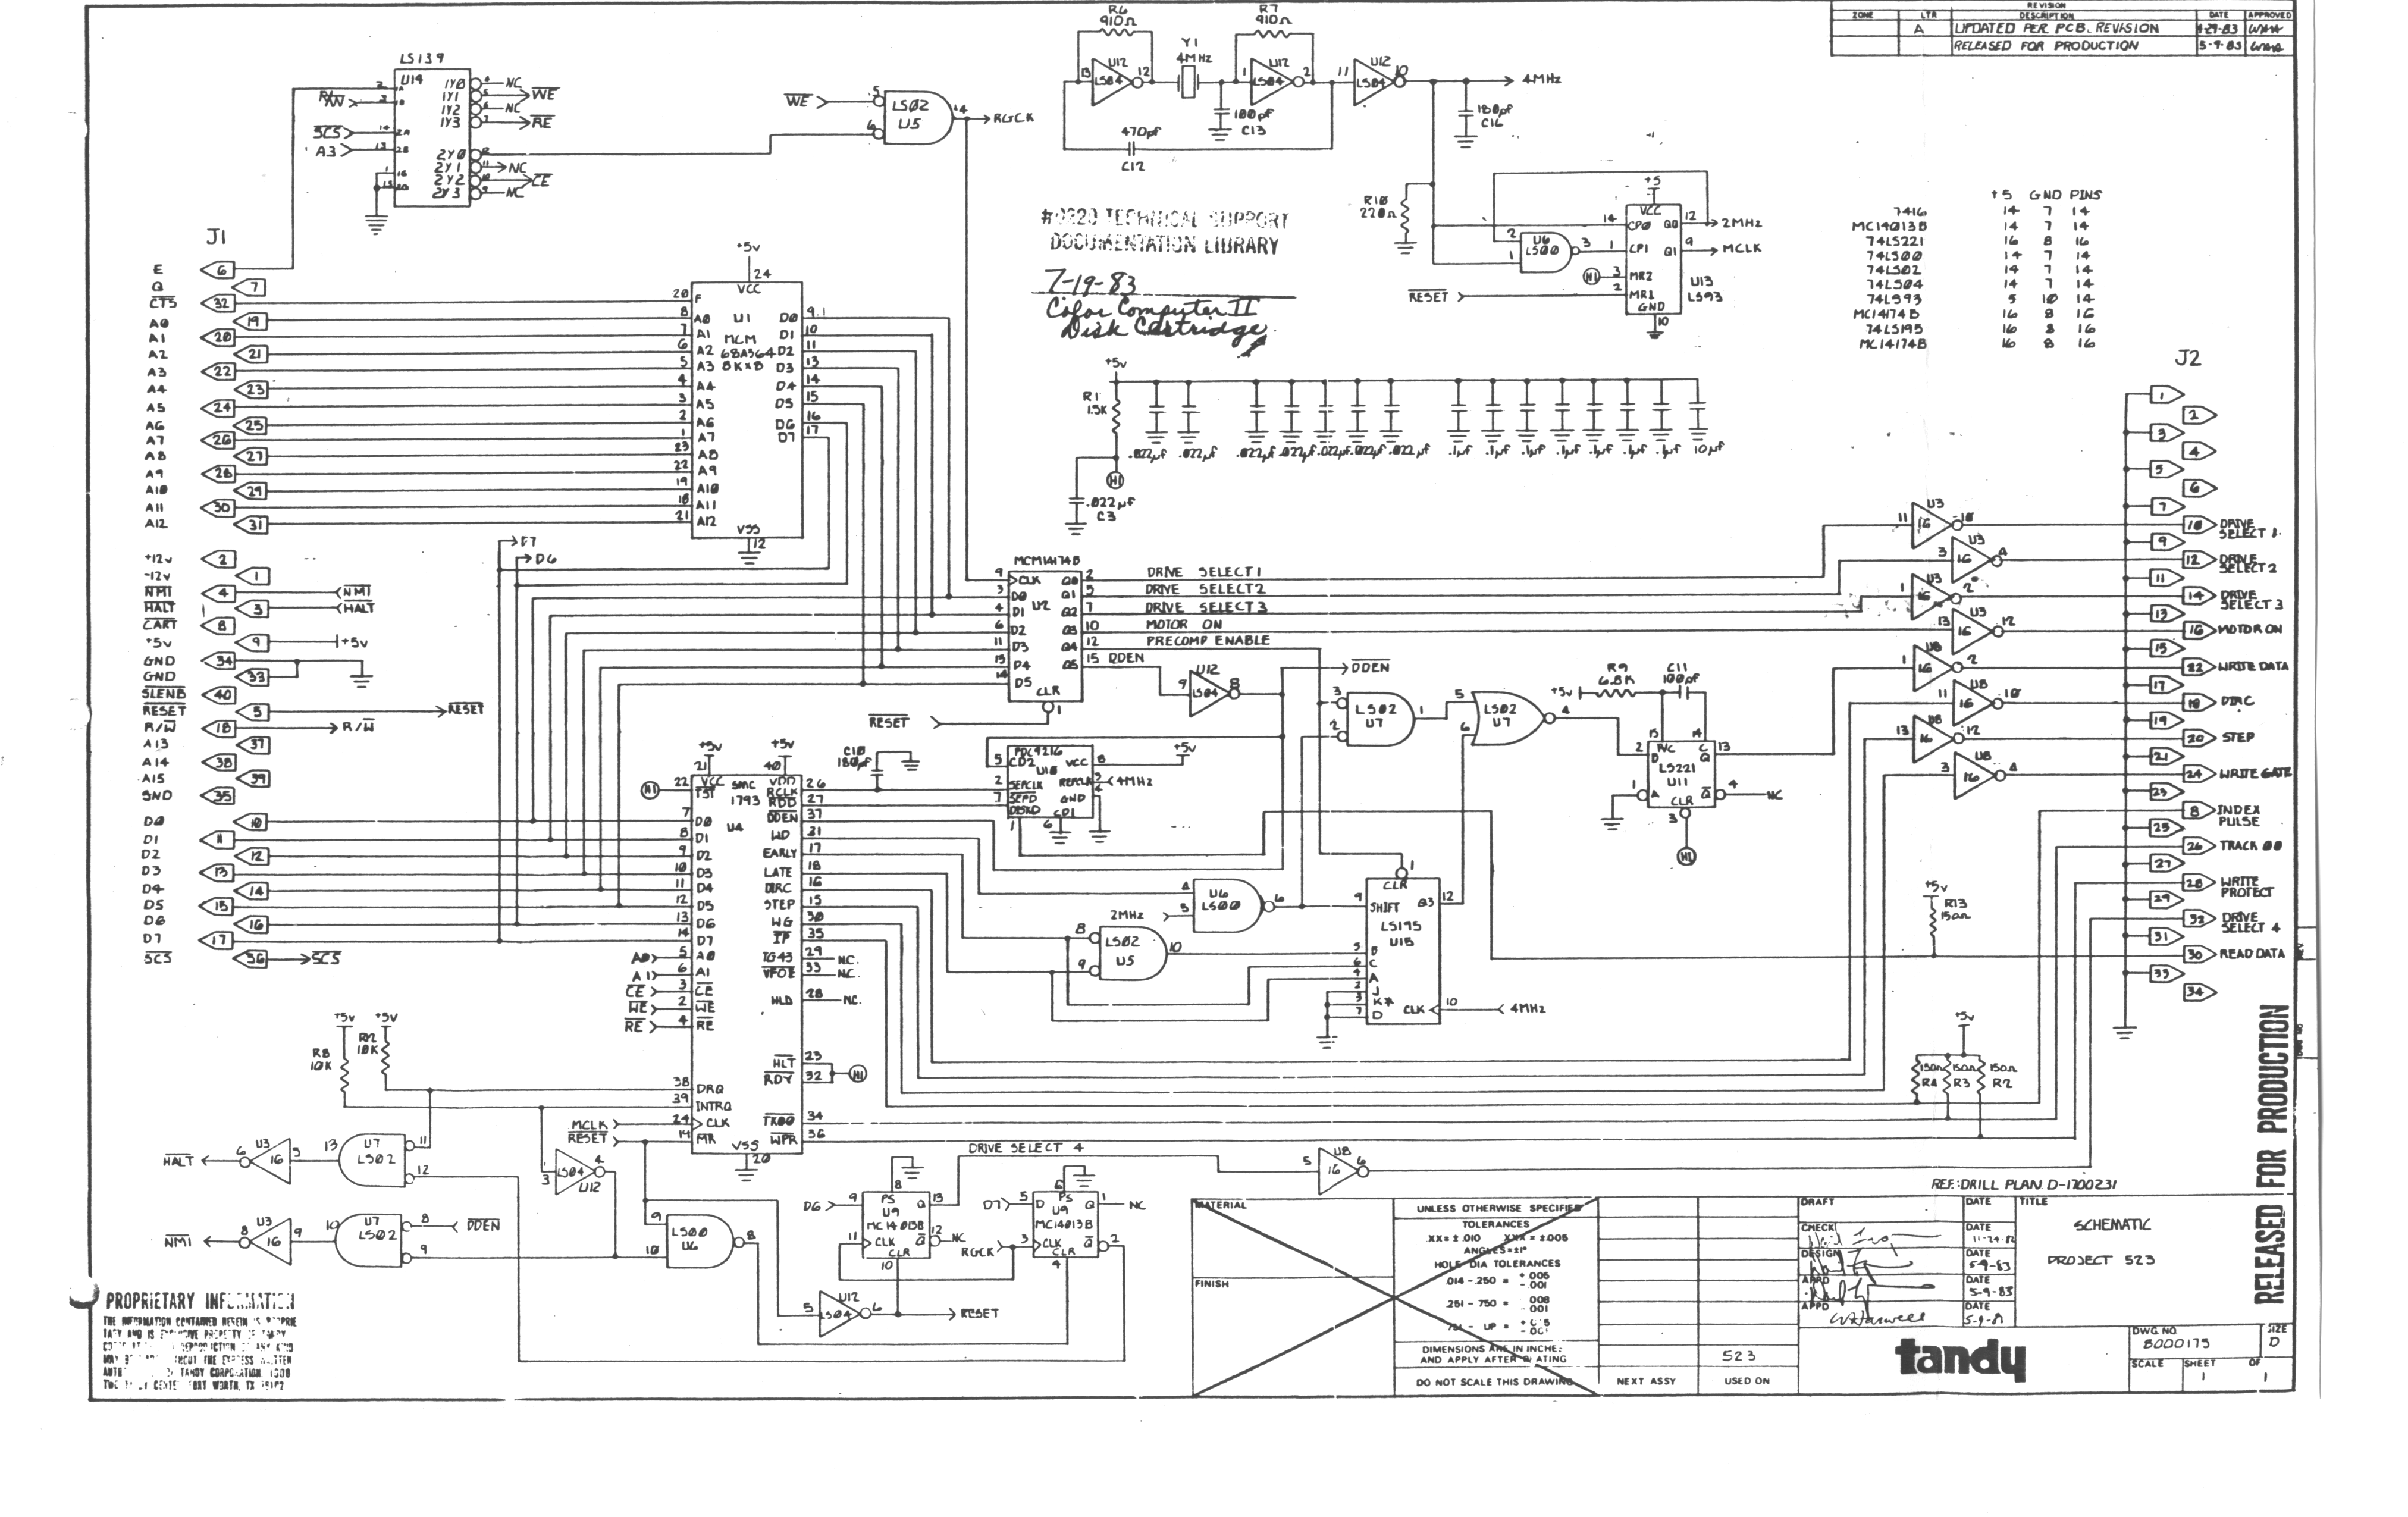 Trs 80 Color Computer Archive Mouse Diagram Schematic And Image Disk Cart Tandy